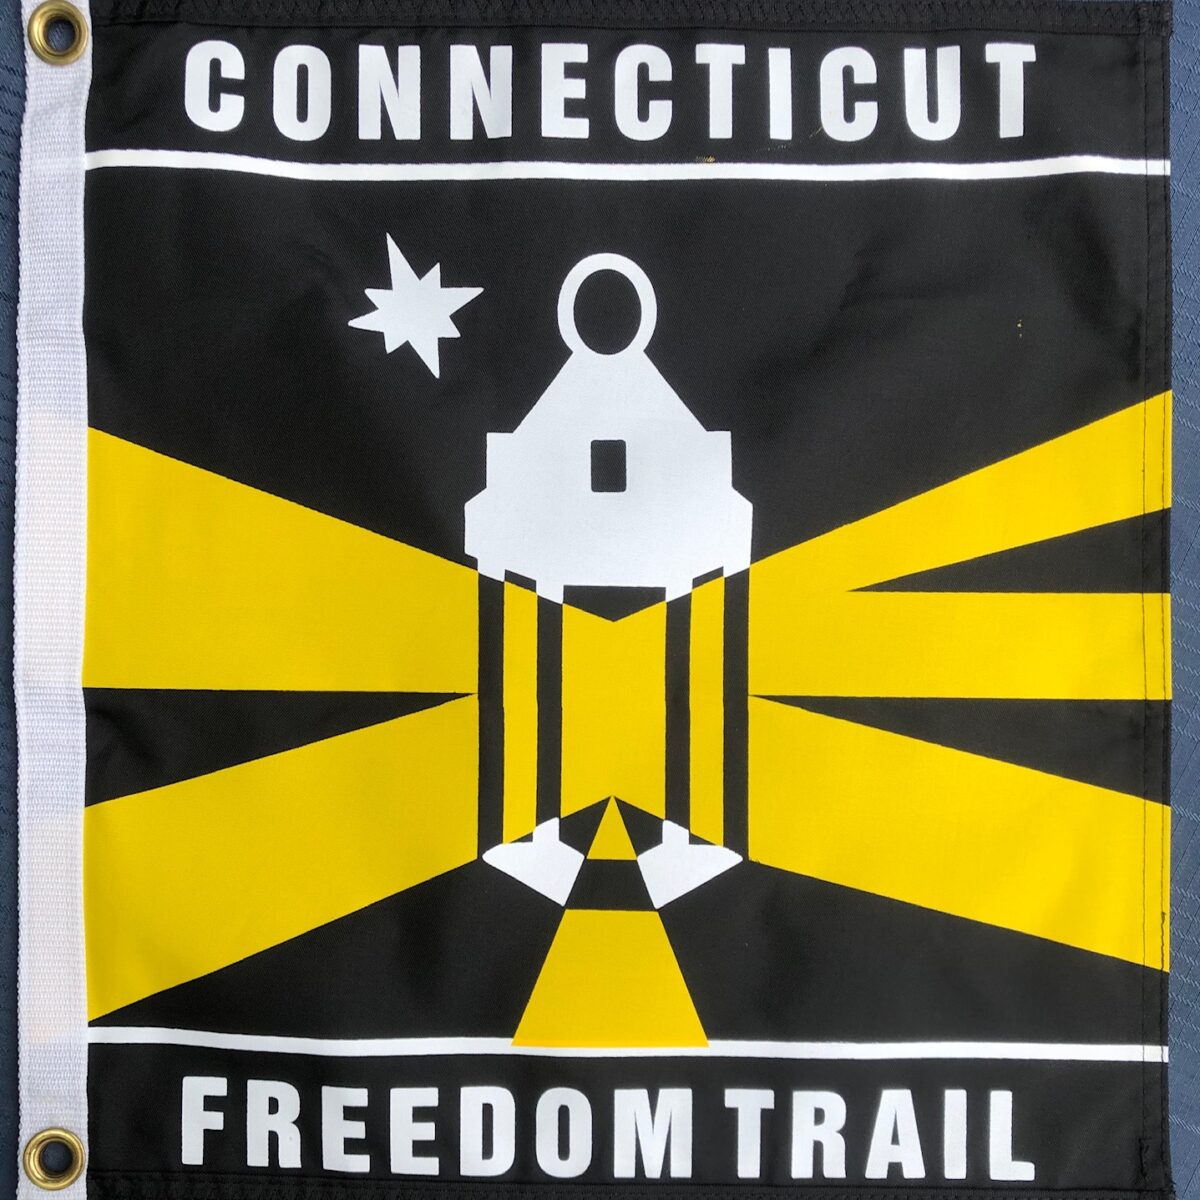 Connecticut Freedom Trail